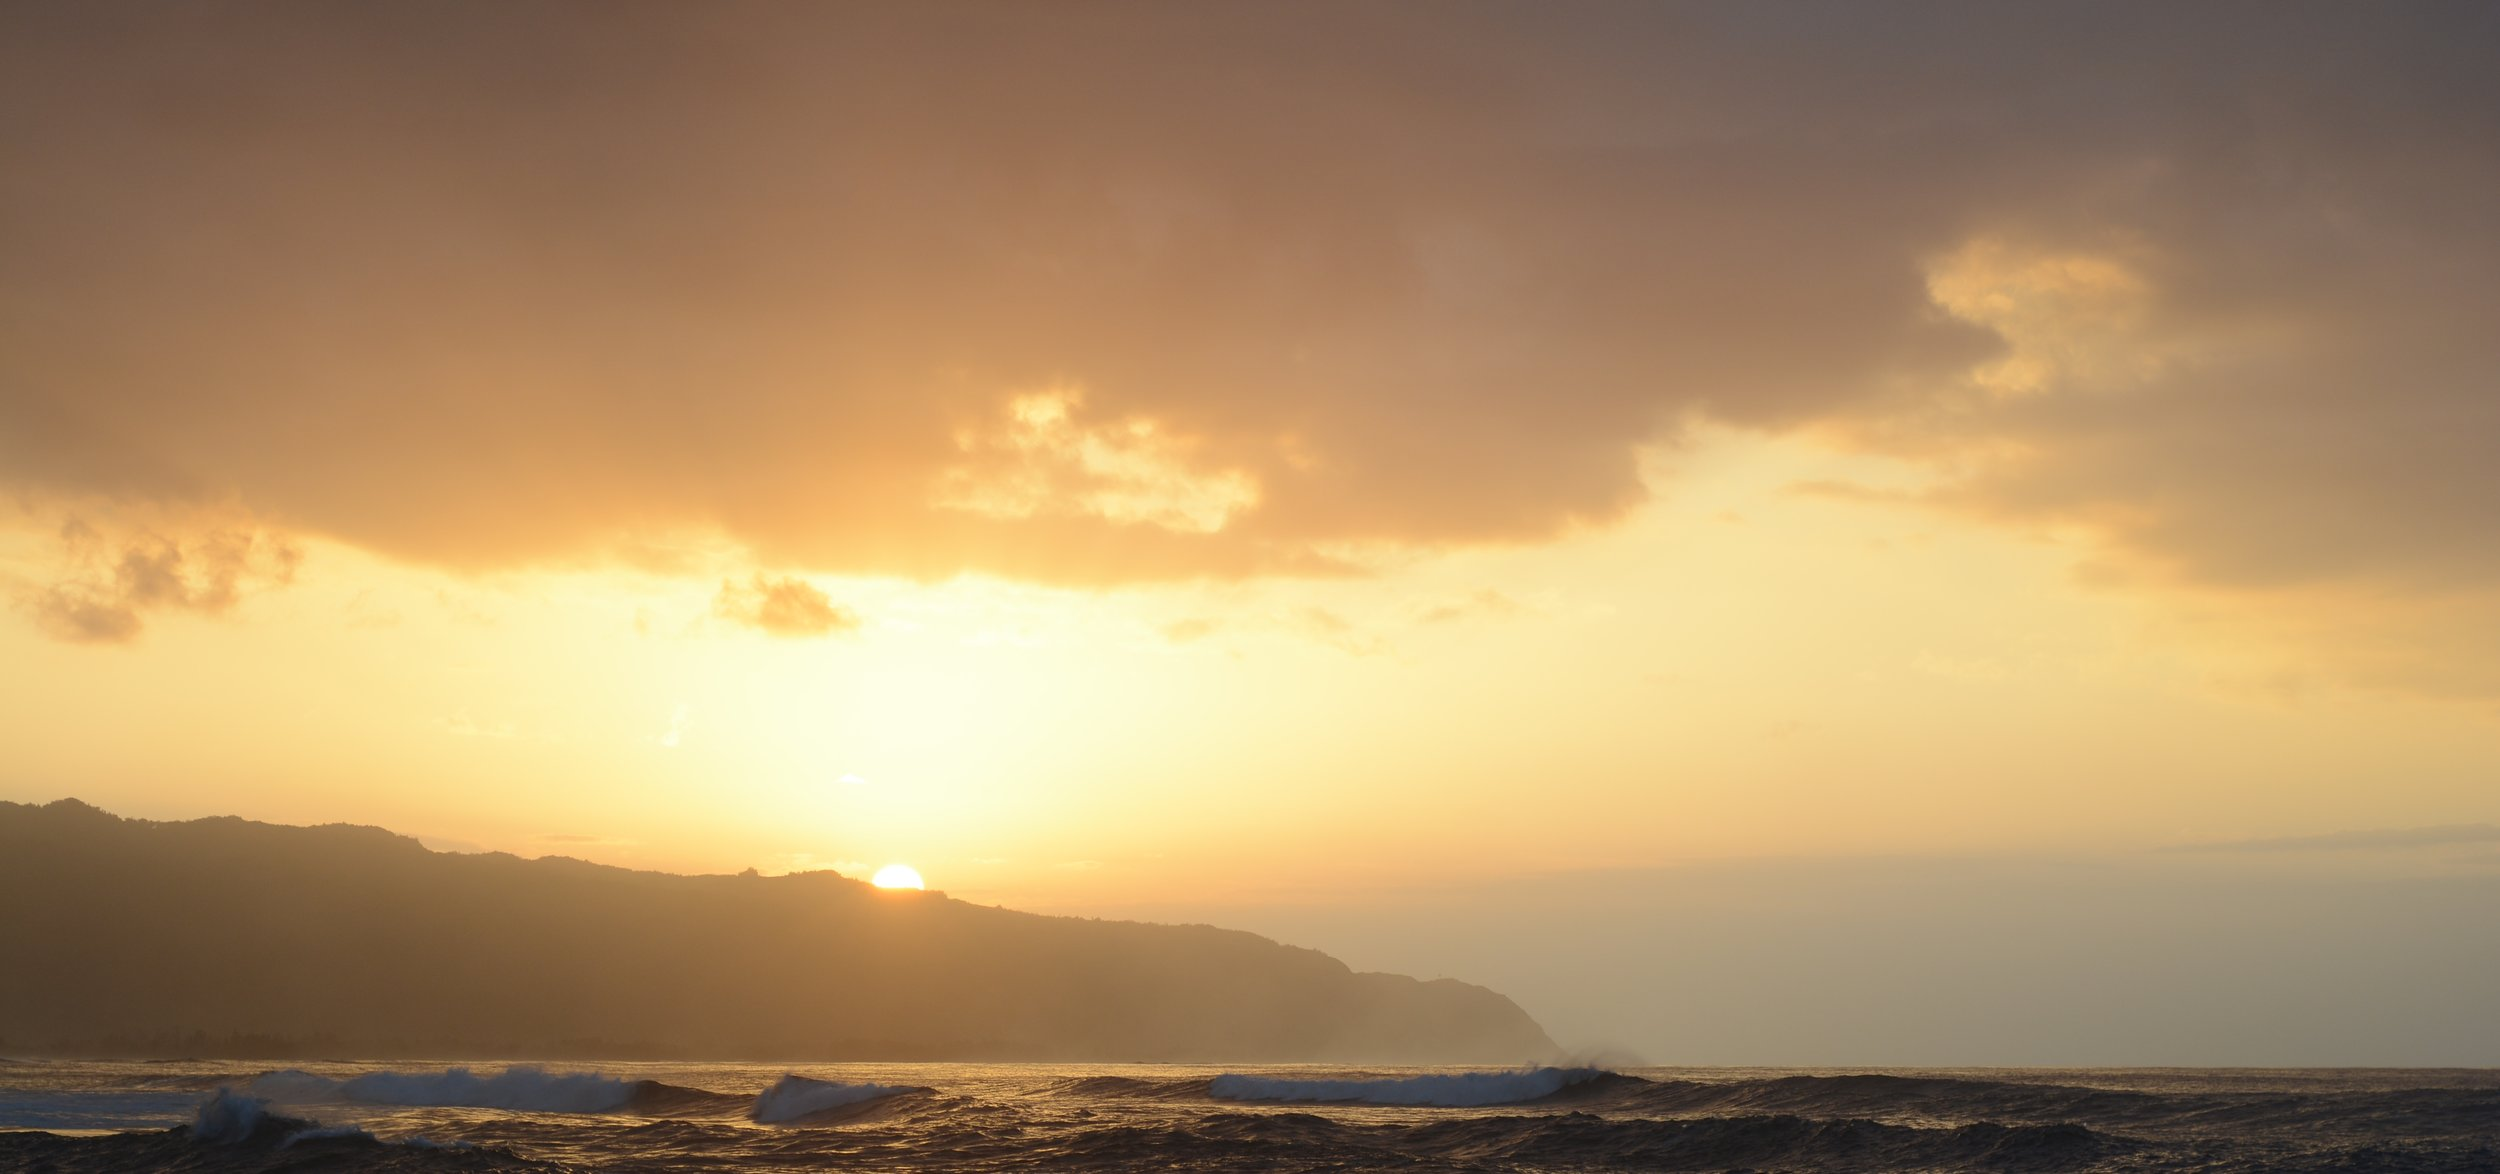 Sunset over Kaʻena point from Haleiwa, north shore Oahu